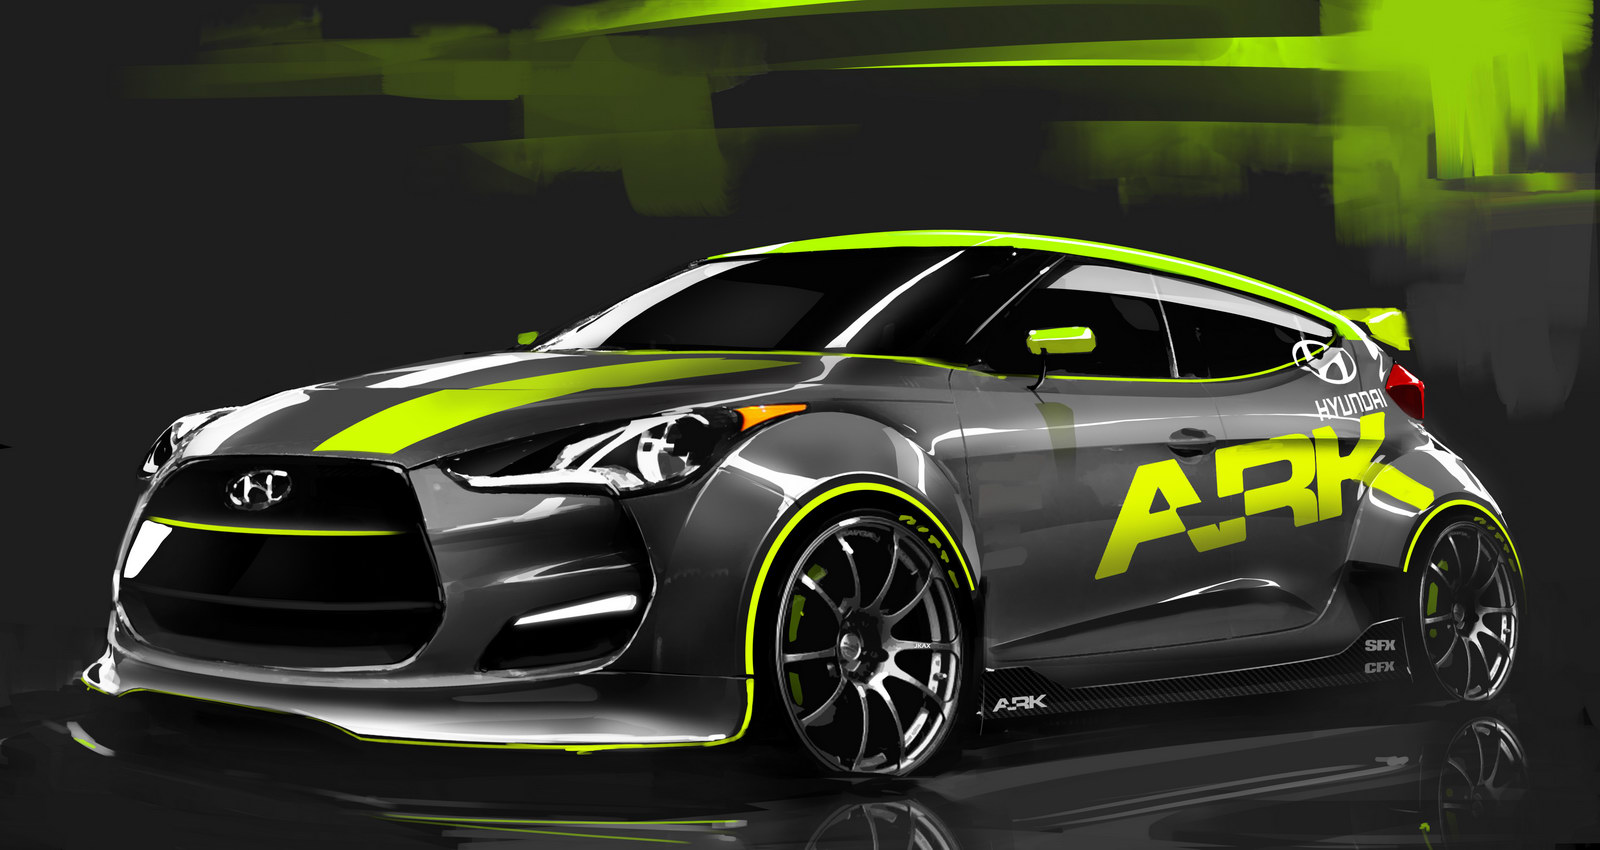 New Hyundai Veloster gets Turbocharged 1 New Hyundai Veloster gets Turbo Charged